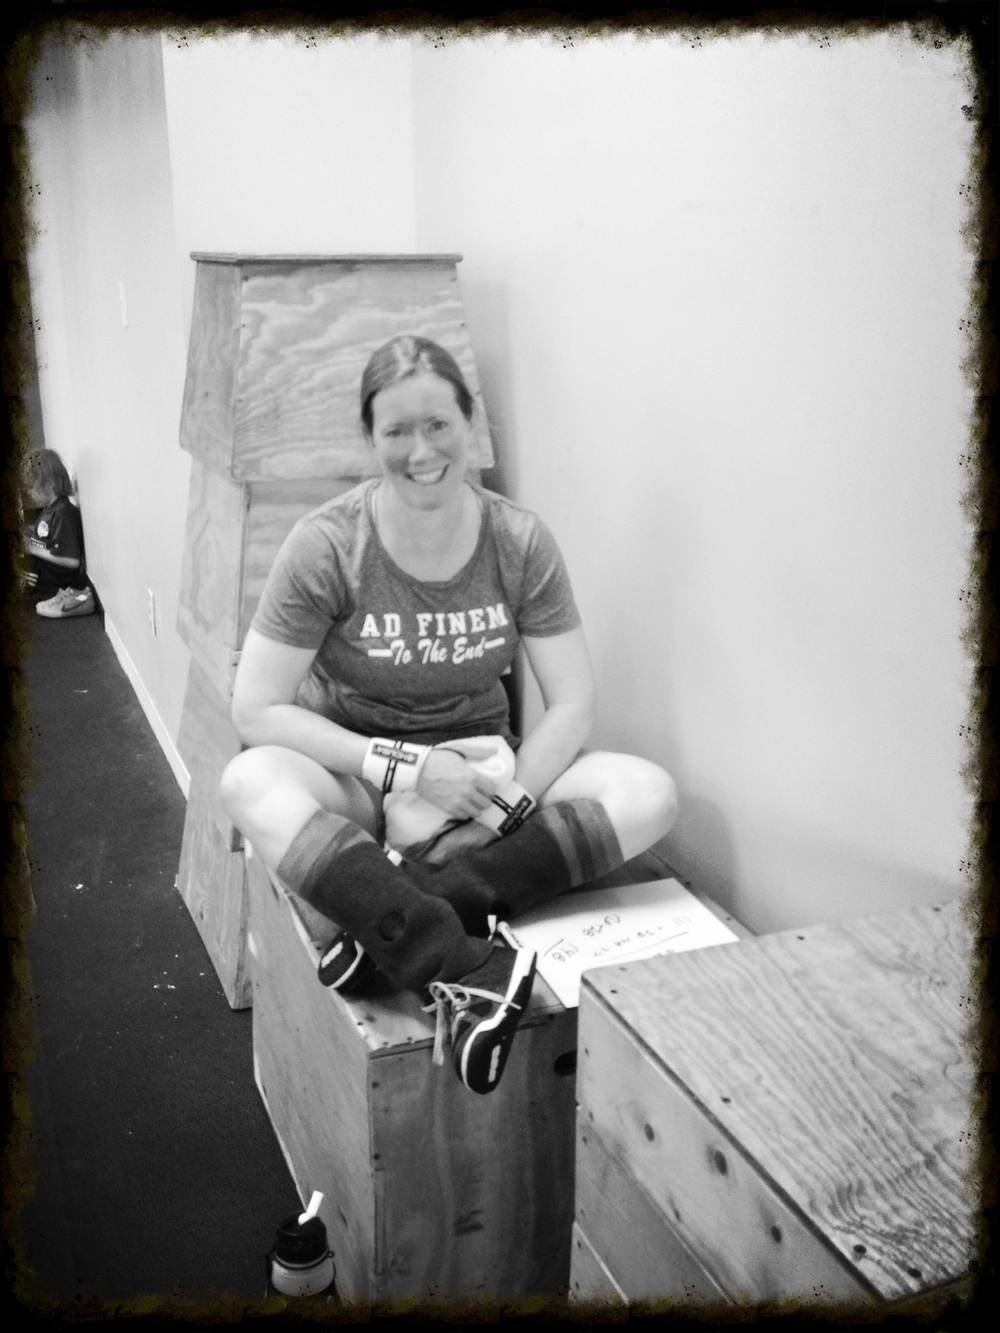 Her smile says it all. J. Best working hard at the evening classes to build a better version of herself.